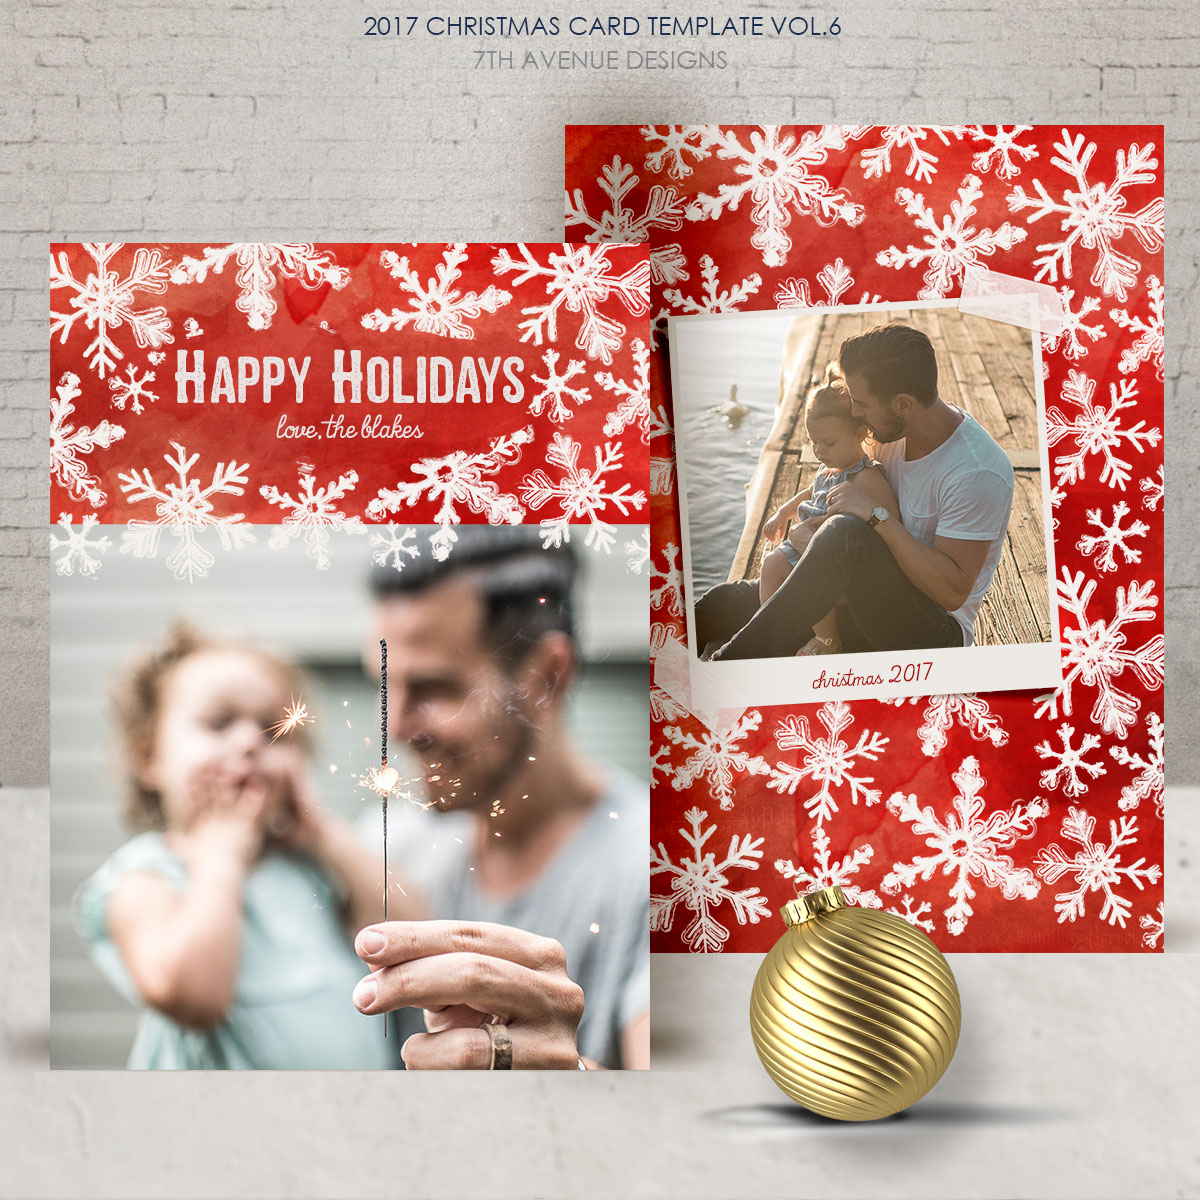 2017 Christmas Card Templates vol.6